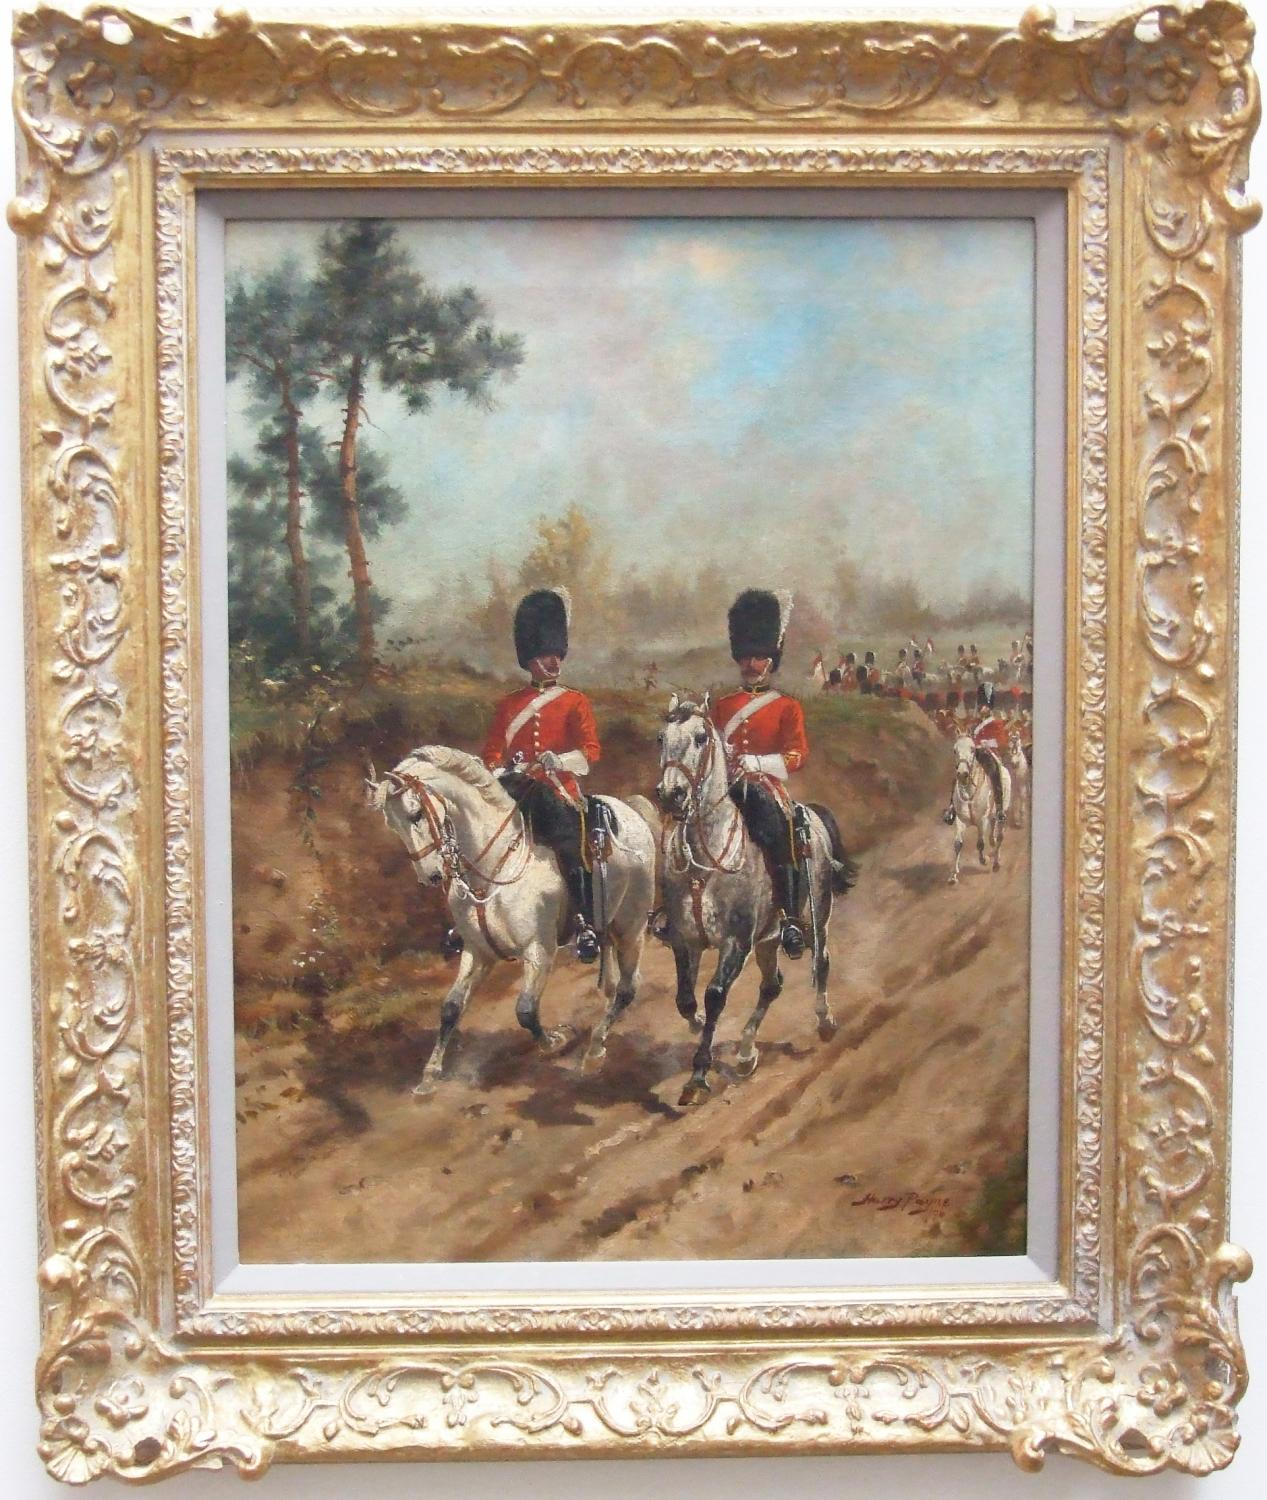 The Scots Greys on patrol by Harry Payne